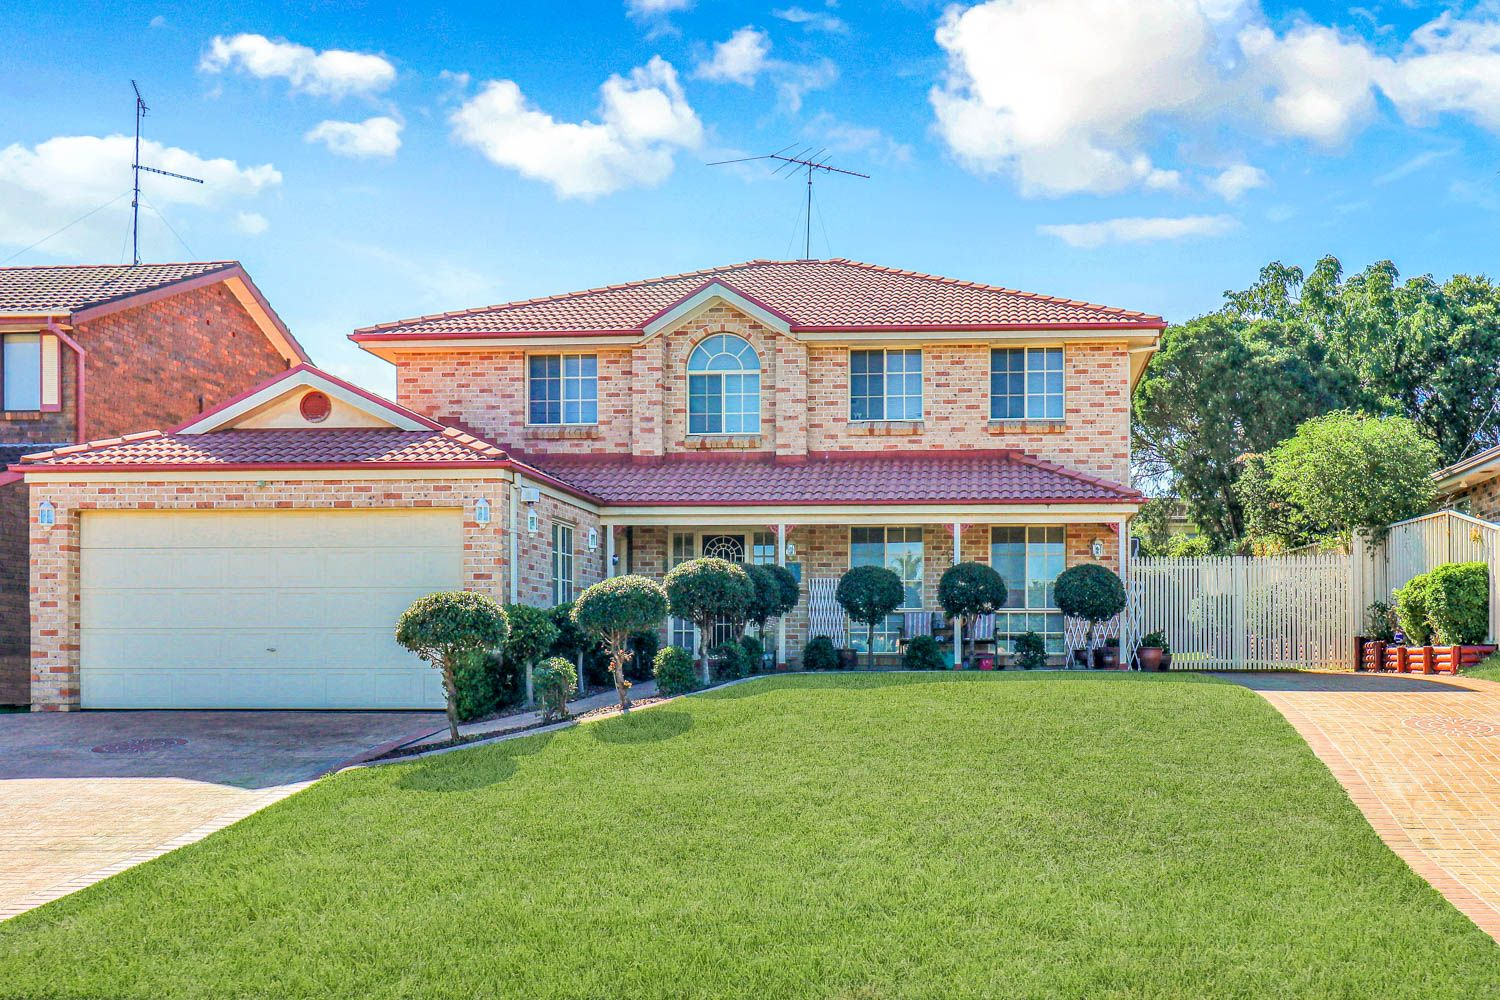 17 Flintlock Drive, St Clair NSW 2759, Image 0